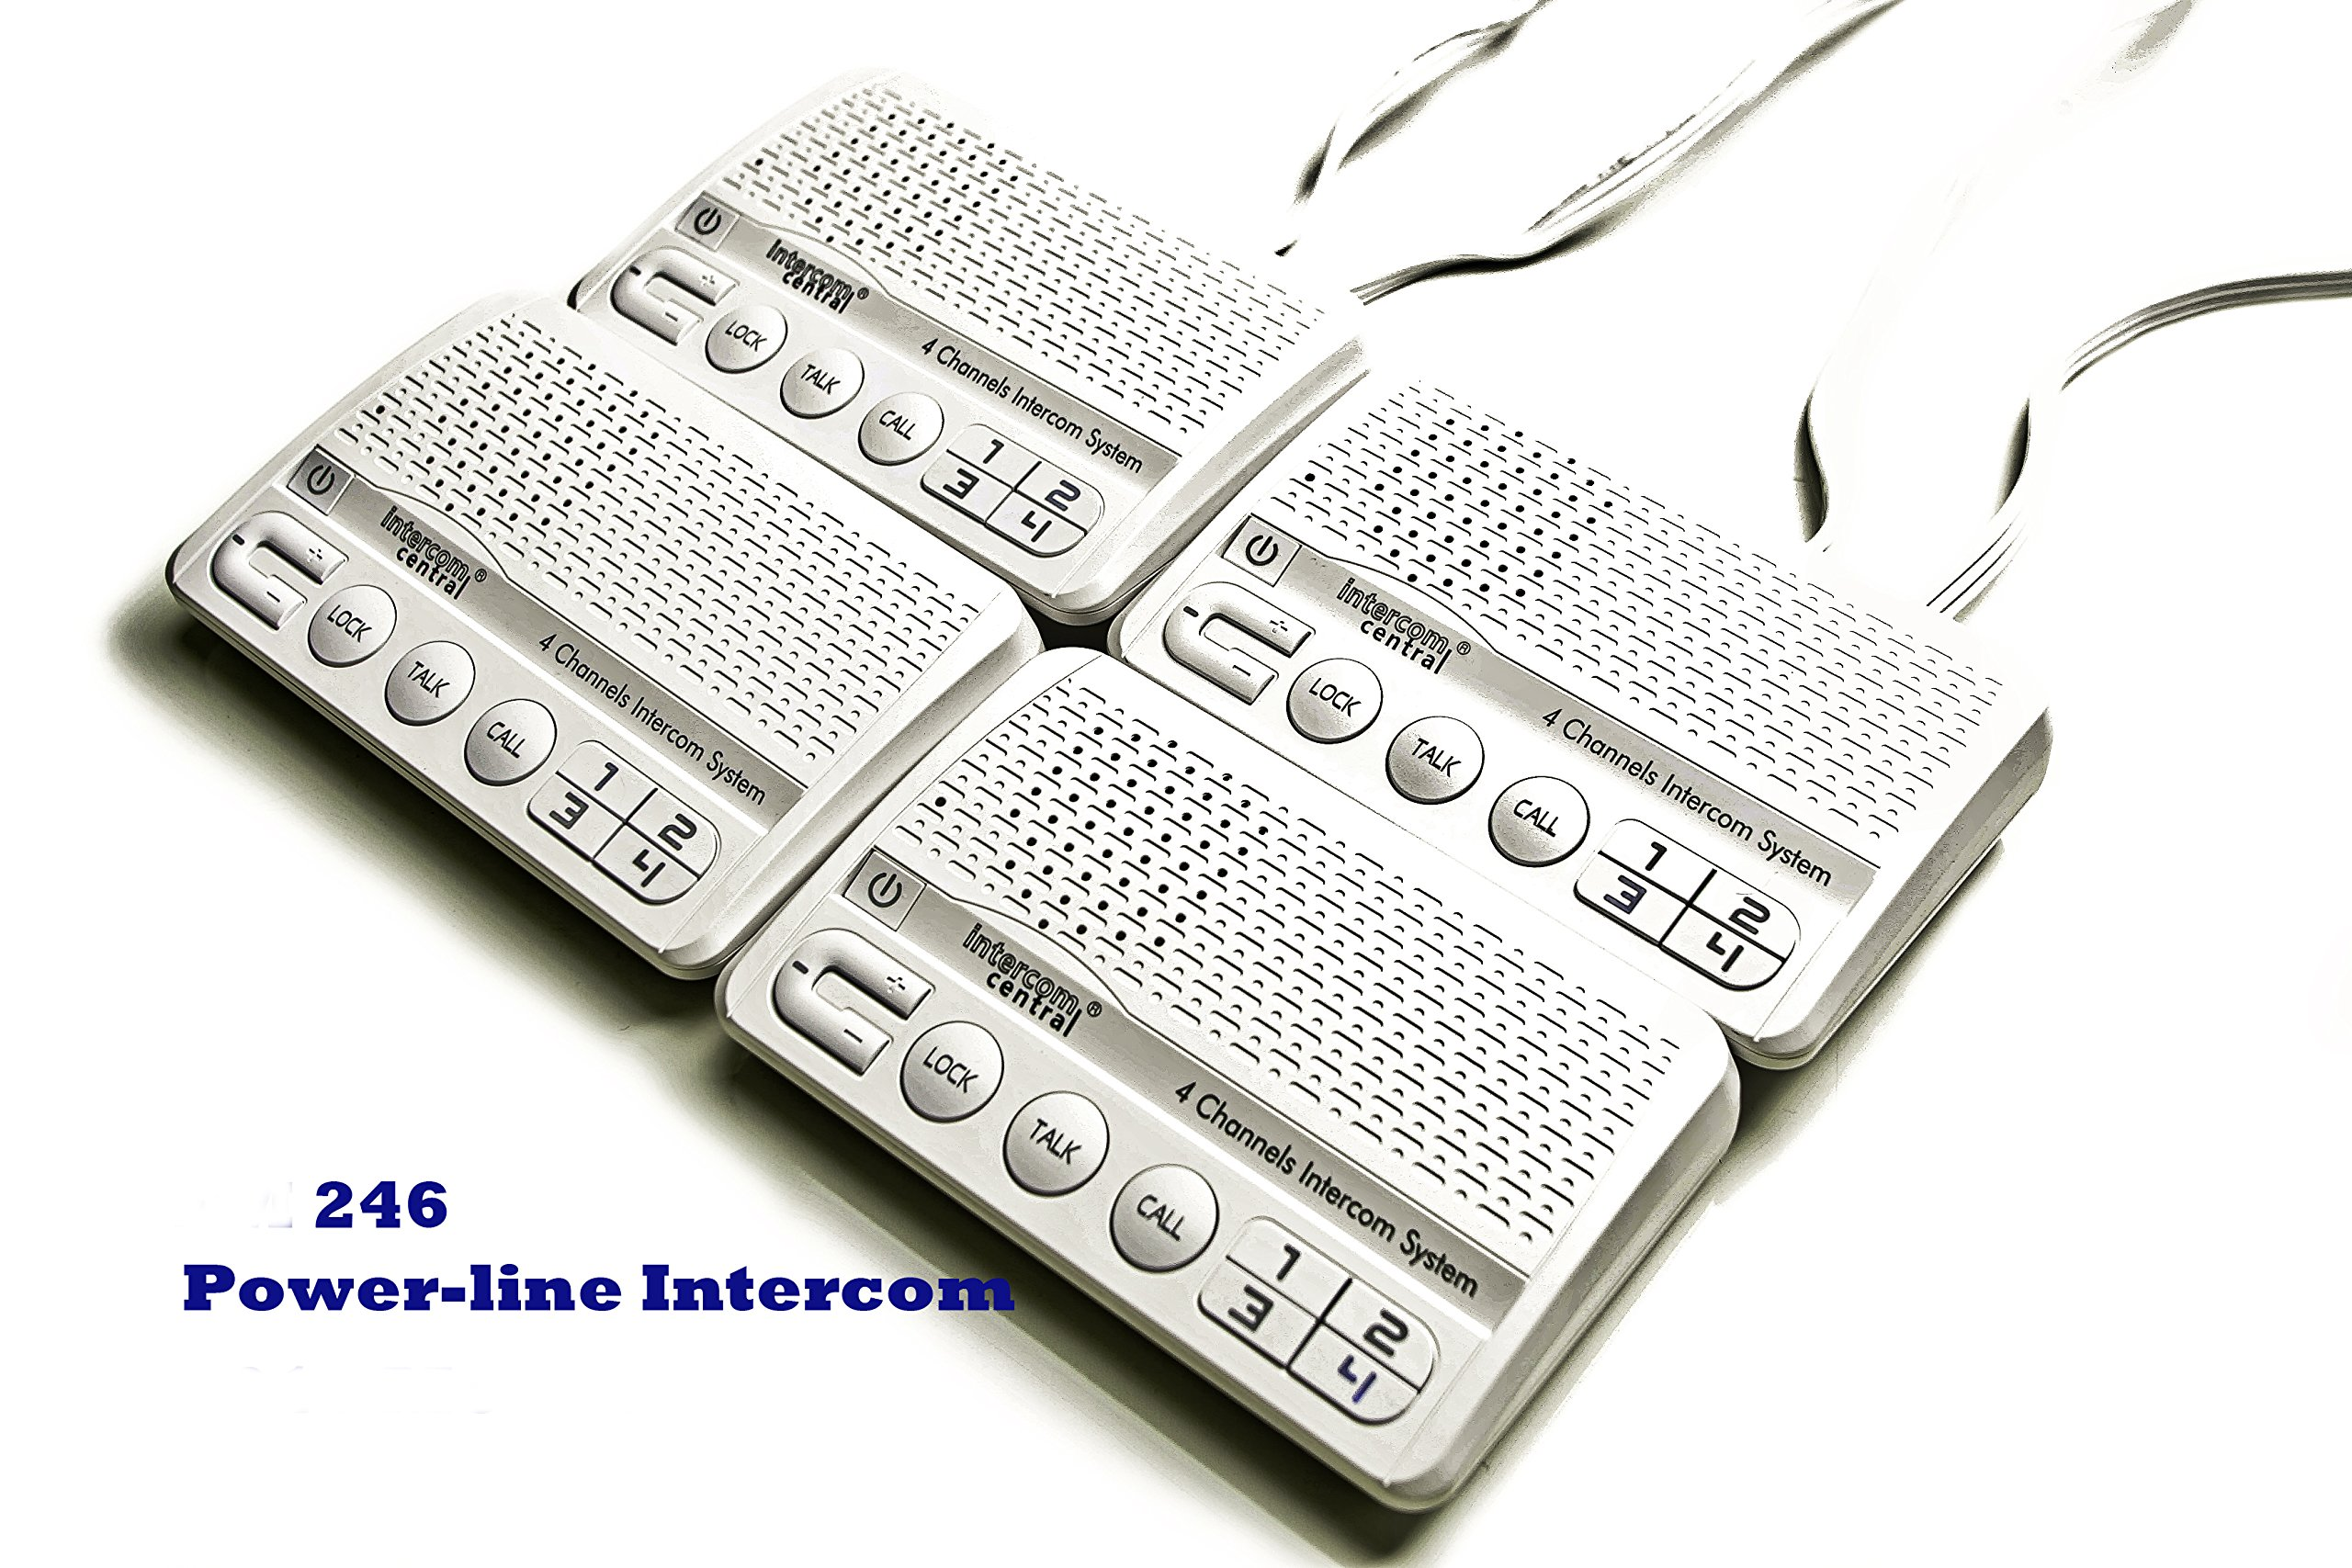 Intercom Central 246 - 4 Channels HOME Power-line Intercom System, 3 Wire, White, Four Stations Set